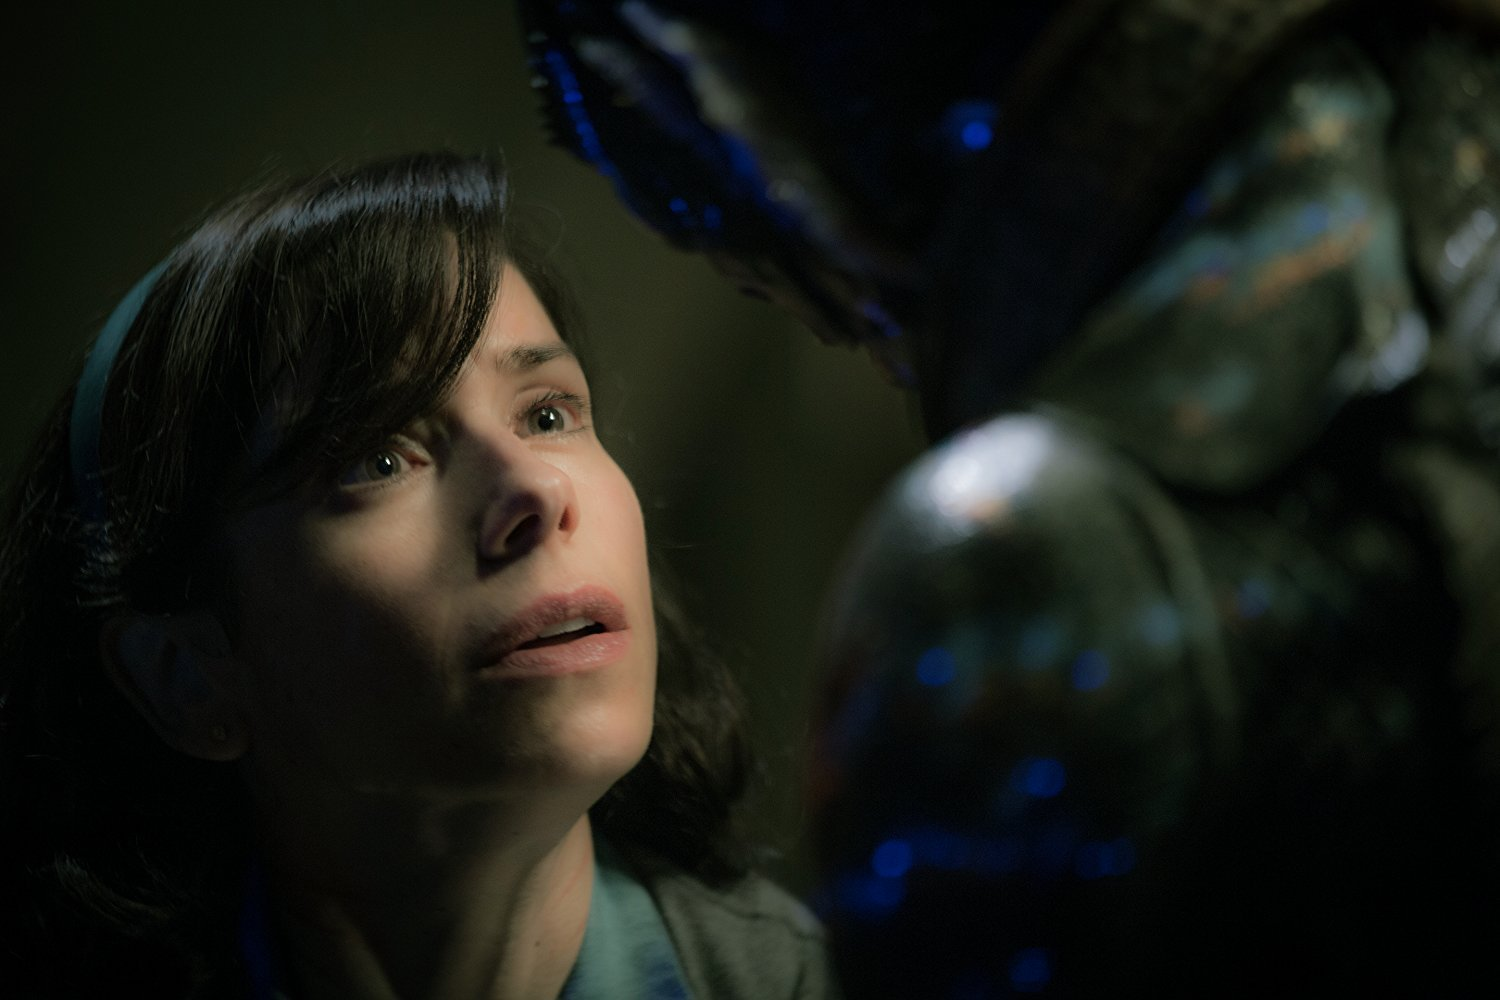 The Shape of Water: A modern love story that speaks volumes